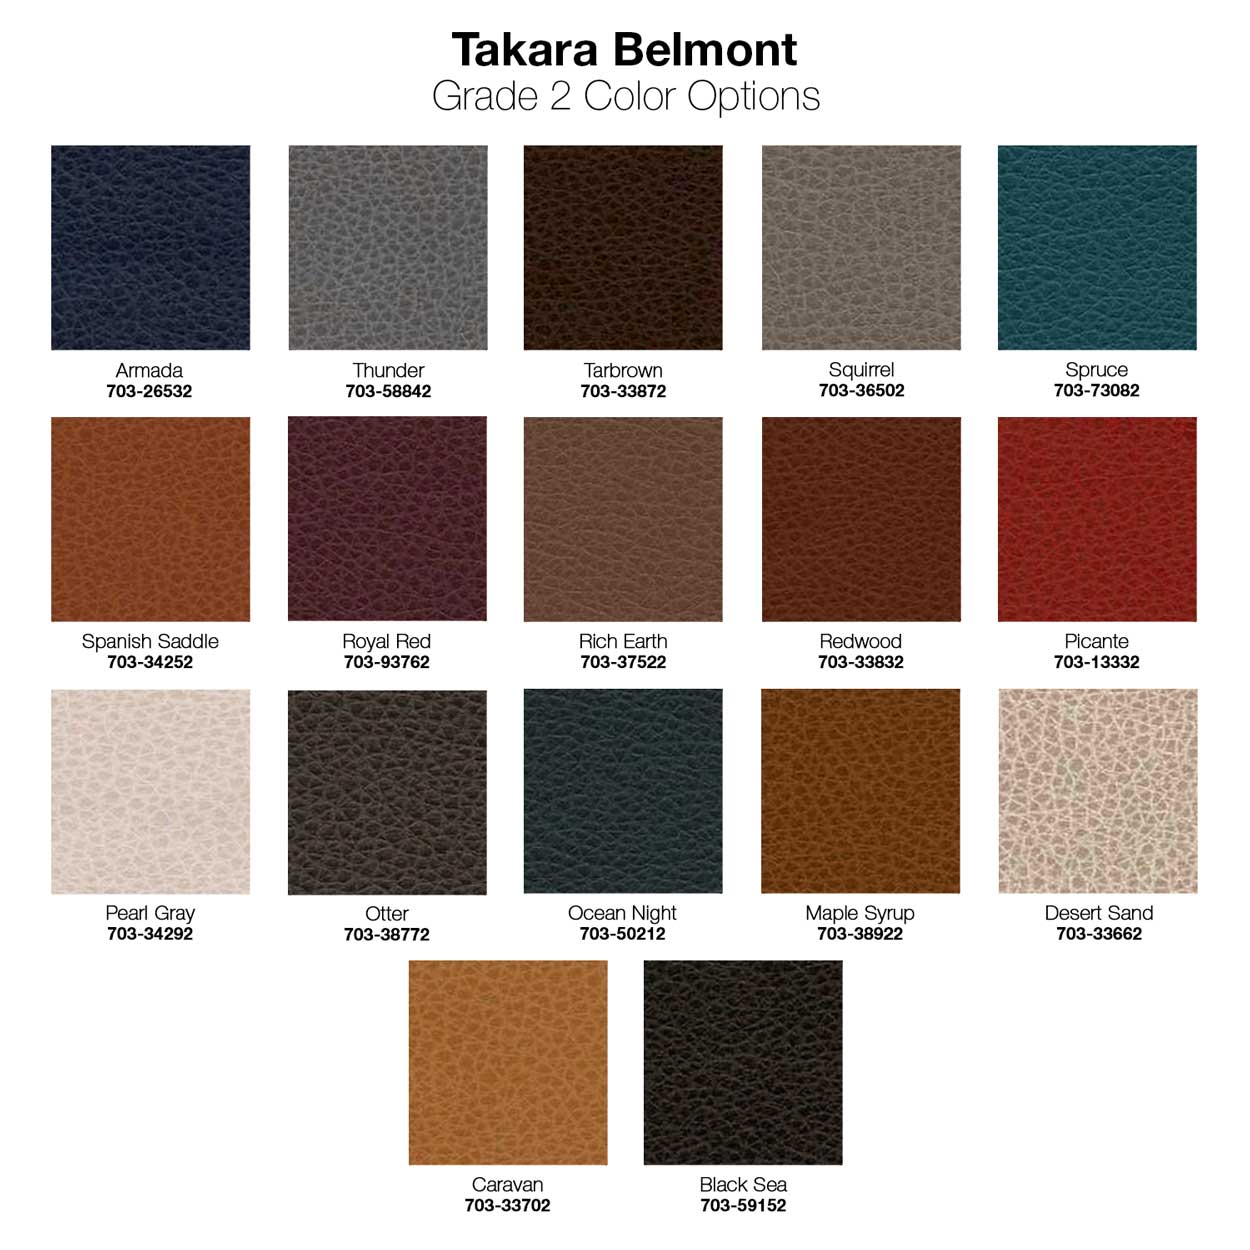 Takara Belmont Sara Styling Chair alternative product image 2